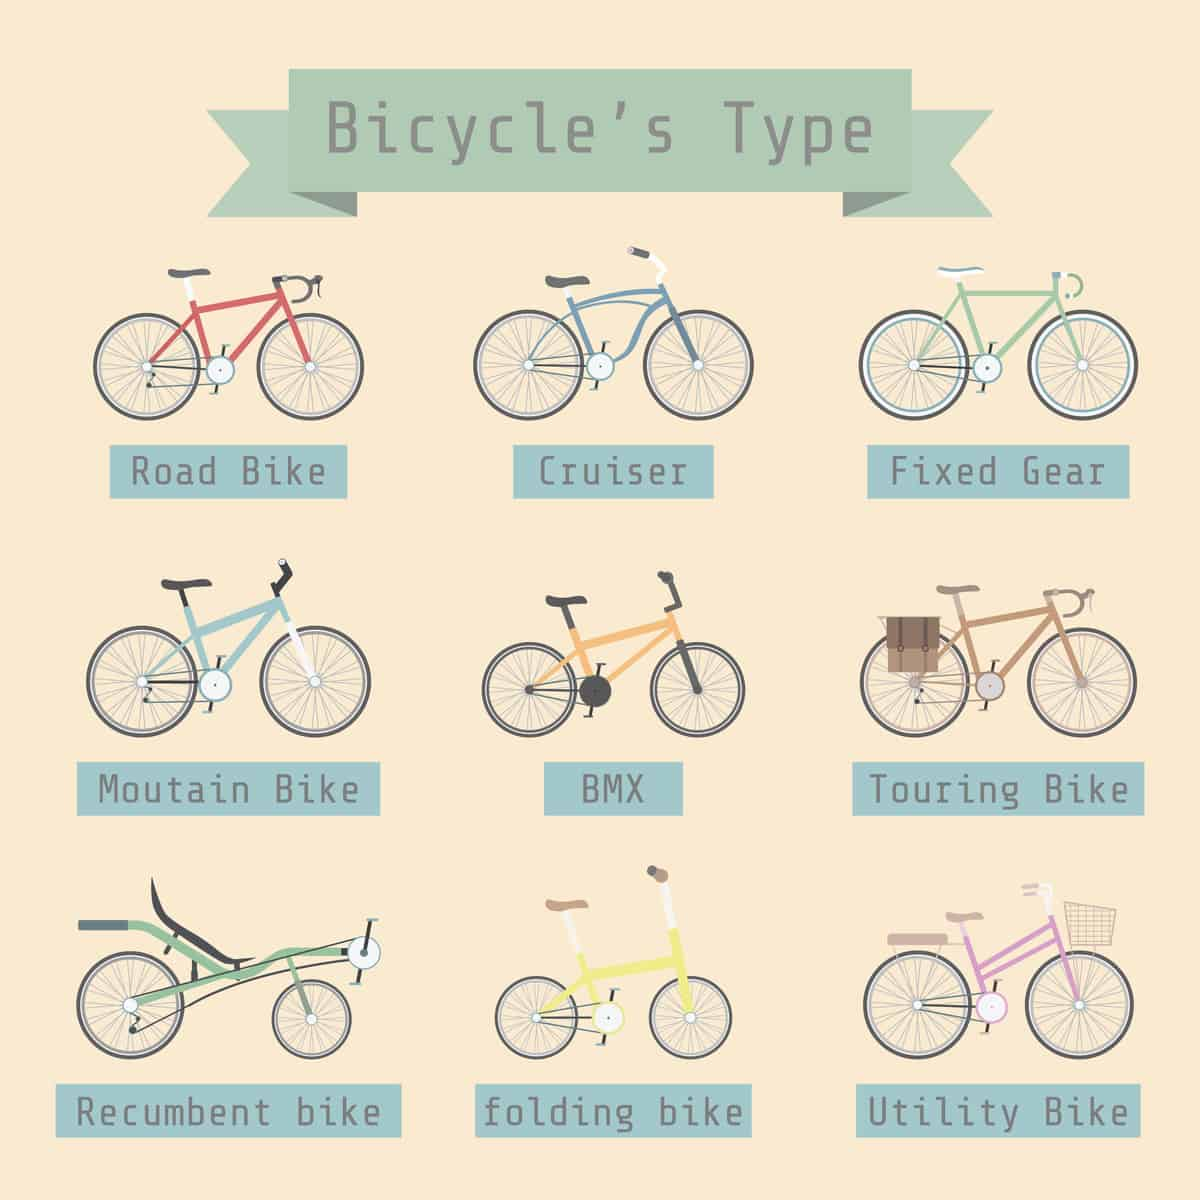 Types of bicycles chart